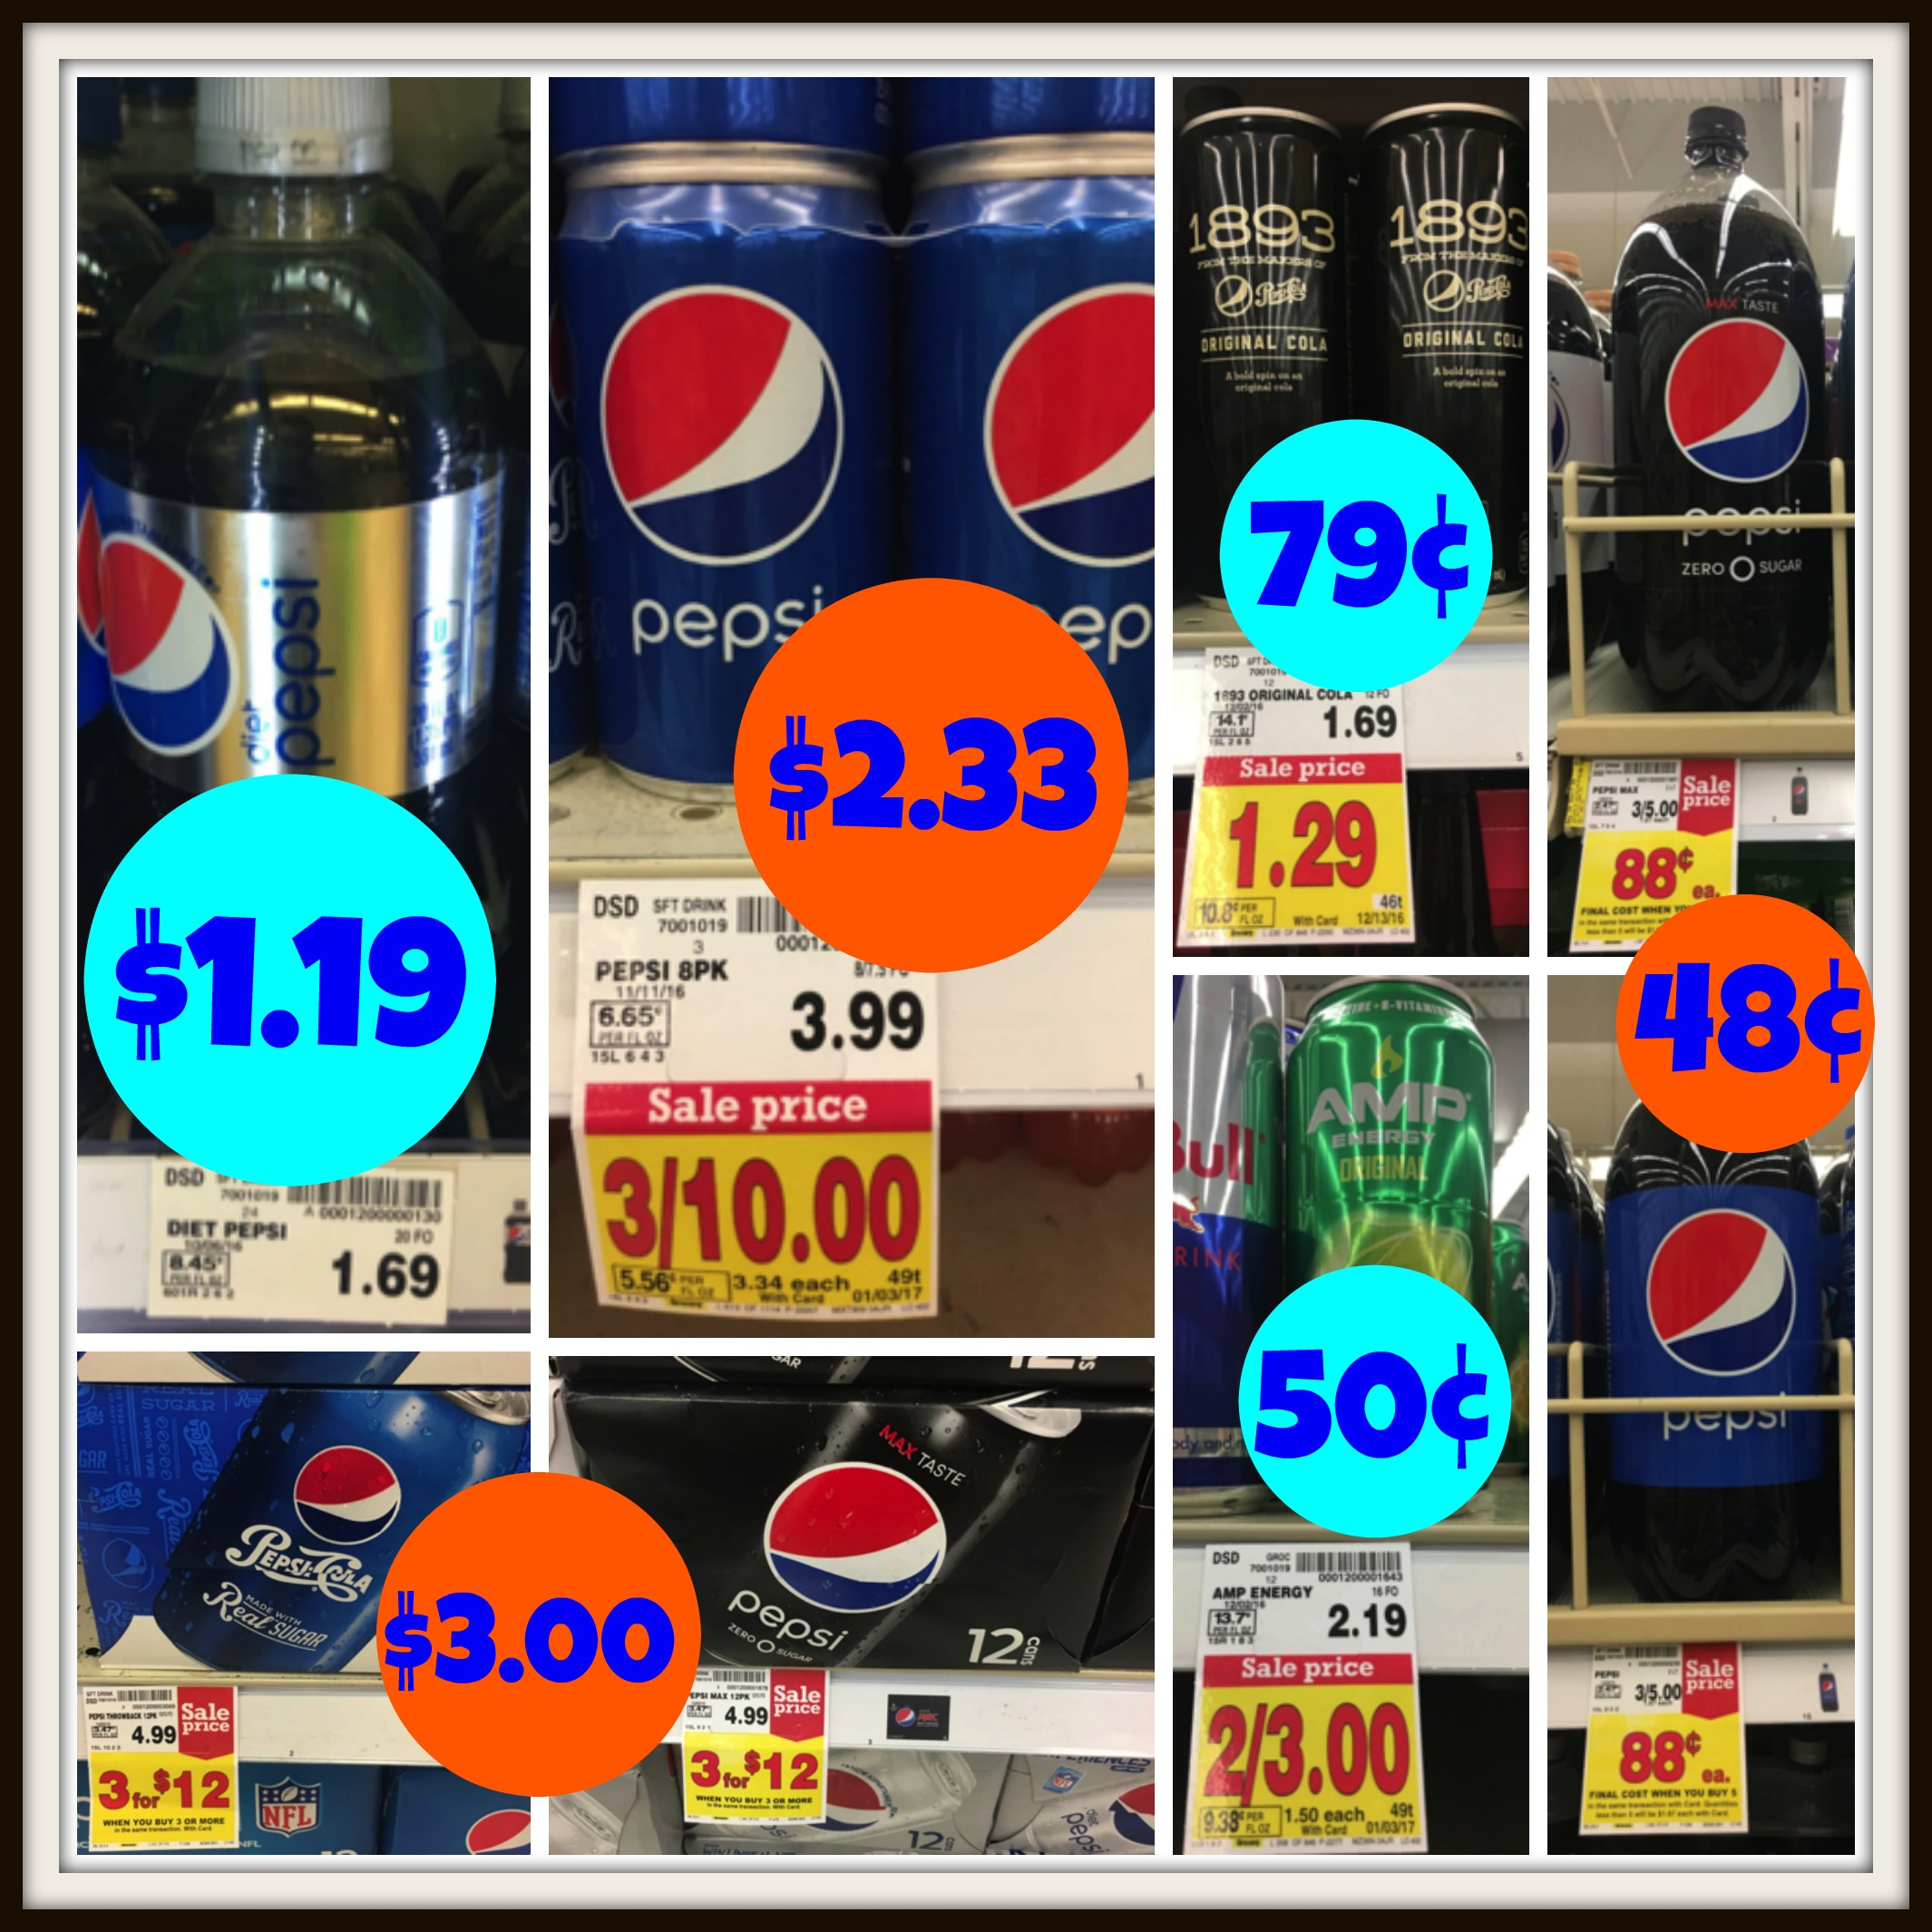 photograph about Pepsi Coupons Printable referred to as Added Clean Pepsi Coupon codes + Kroger Package deal Situations!! Kroger Krazy